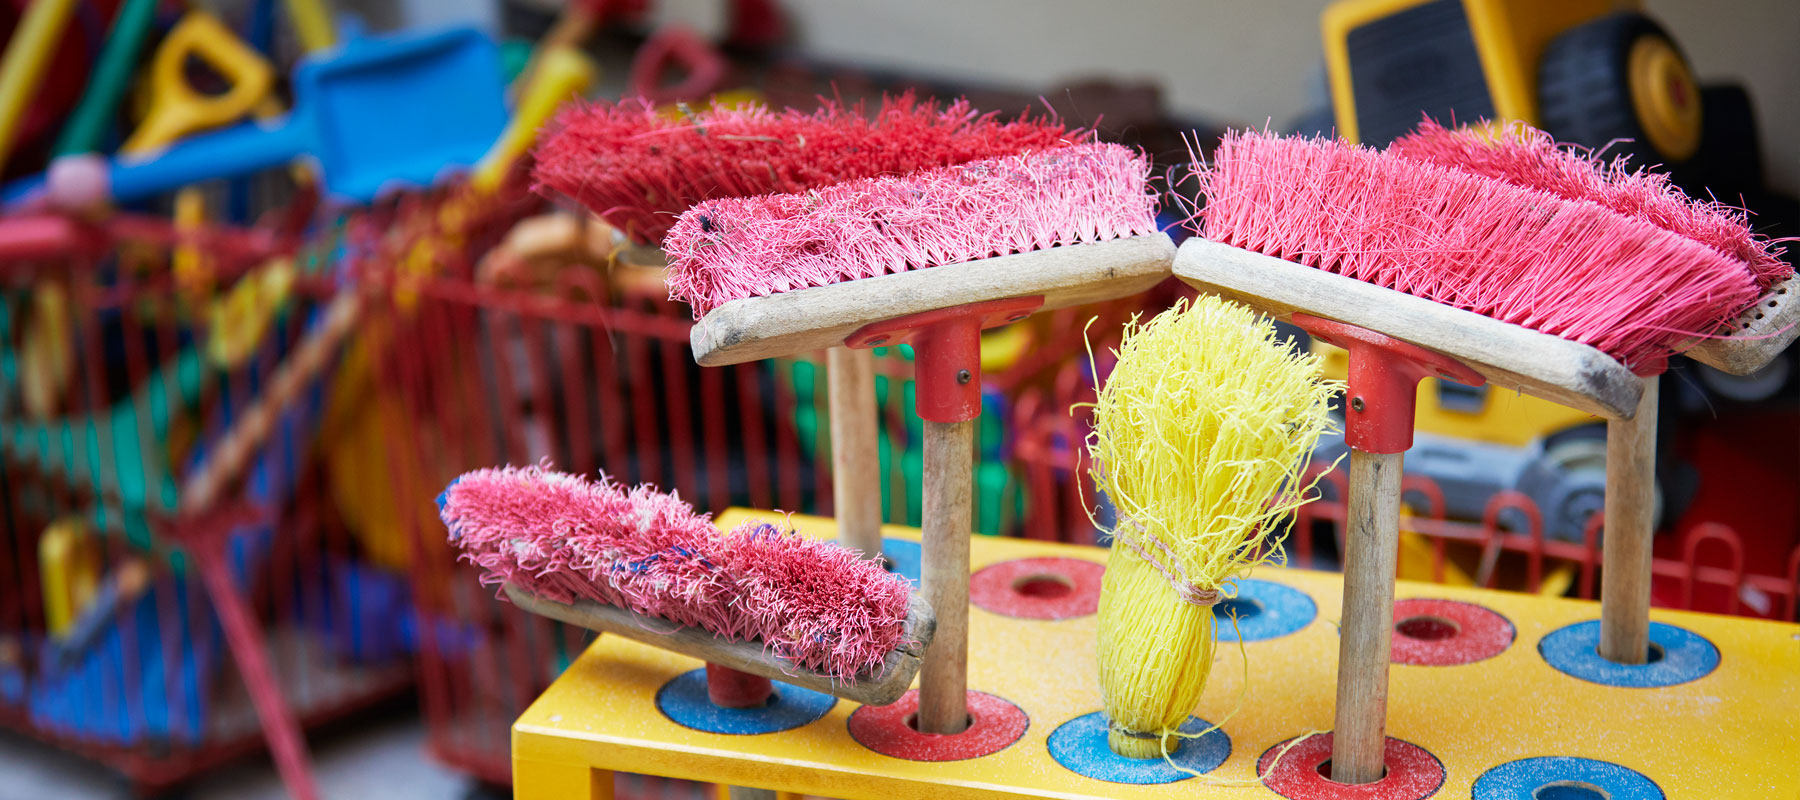 brooms and playground equipment